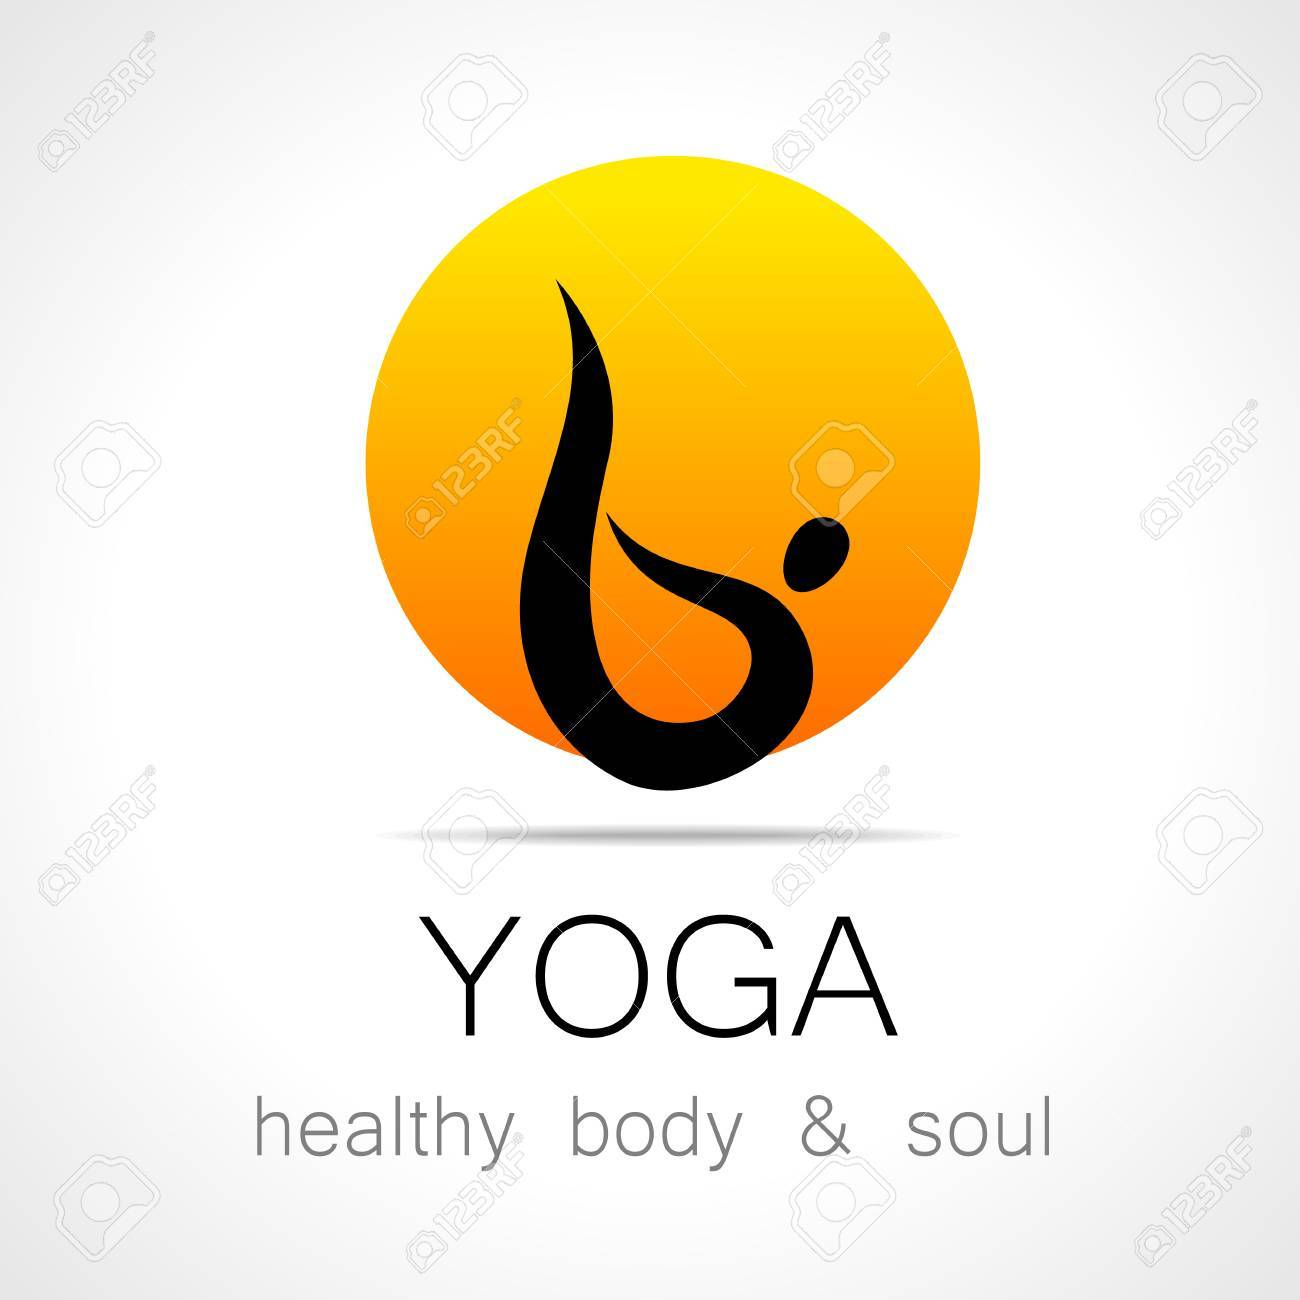 Yoga Logo Design Template Health Care Beauty Spa Relax Royalty Free Cliparts Vectors And Stock Illustration Image 43027281